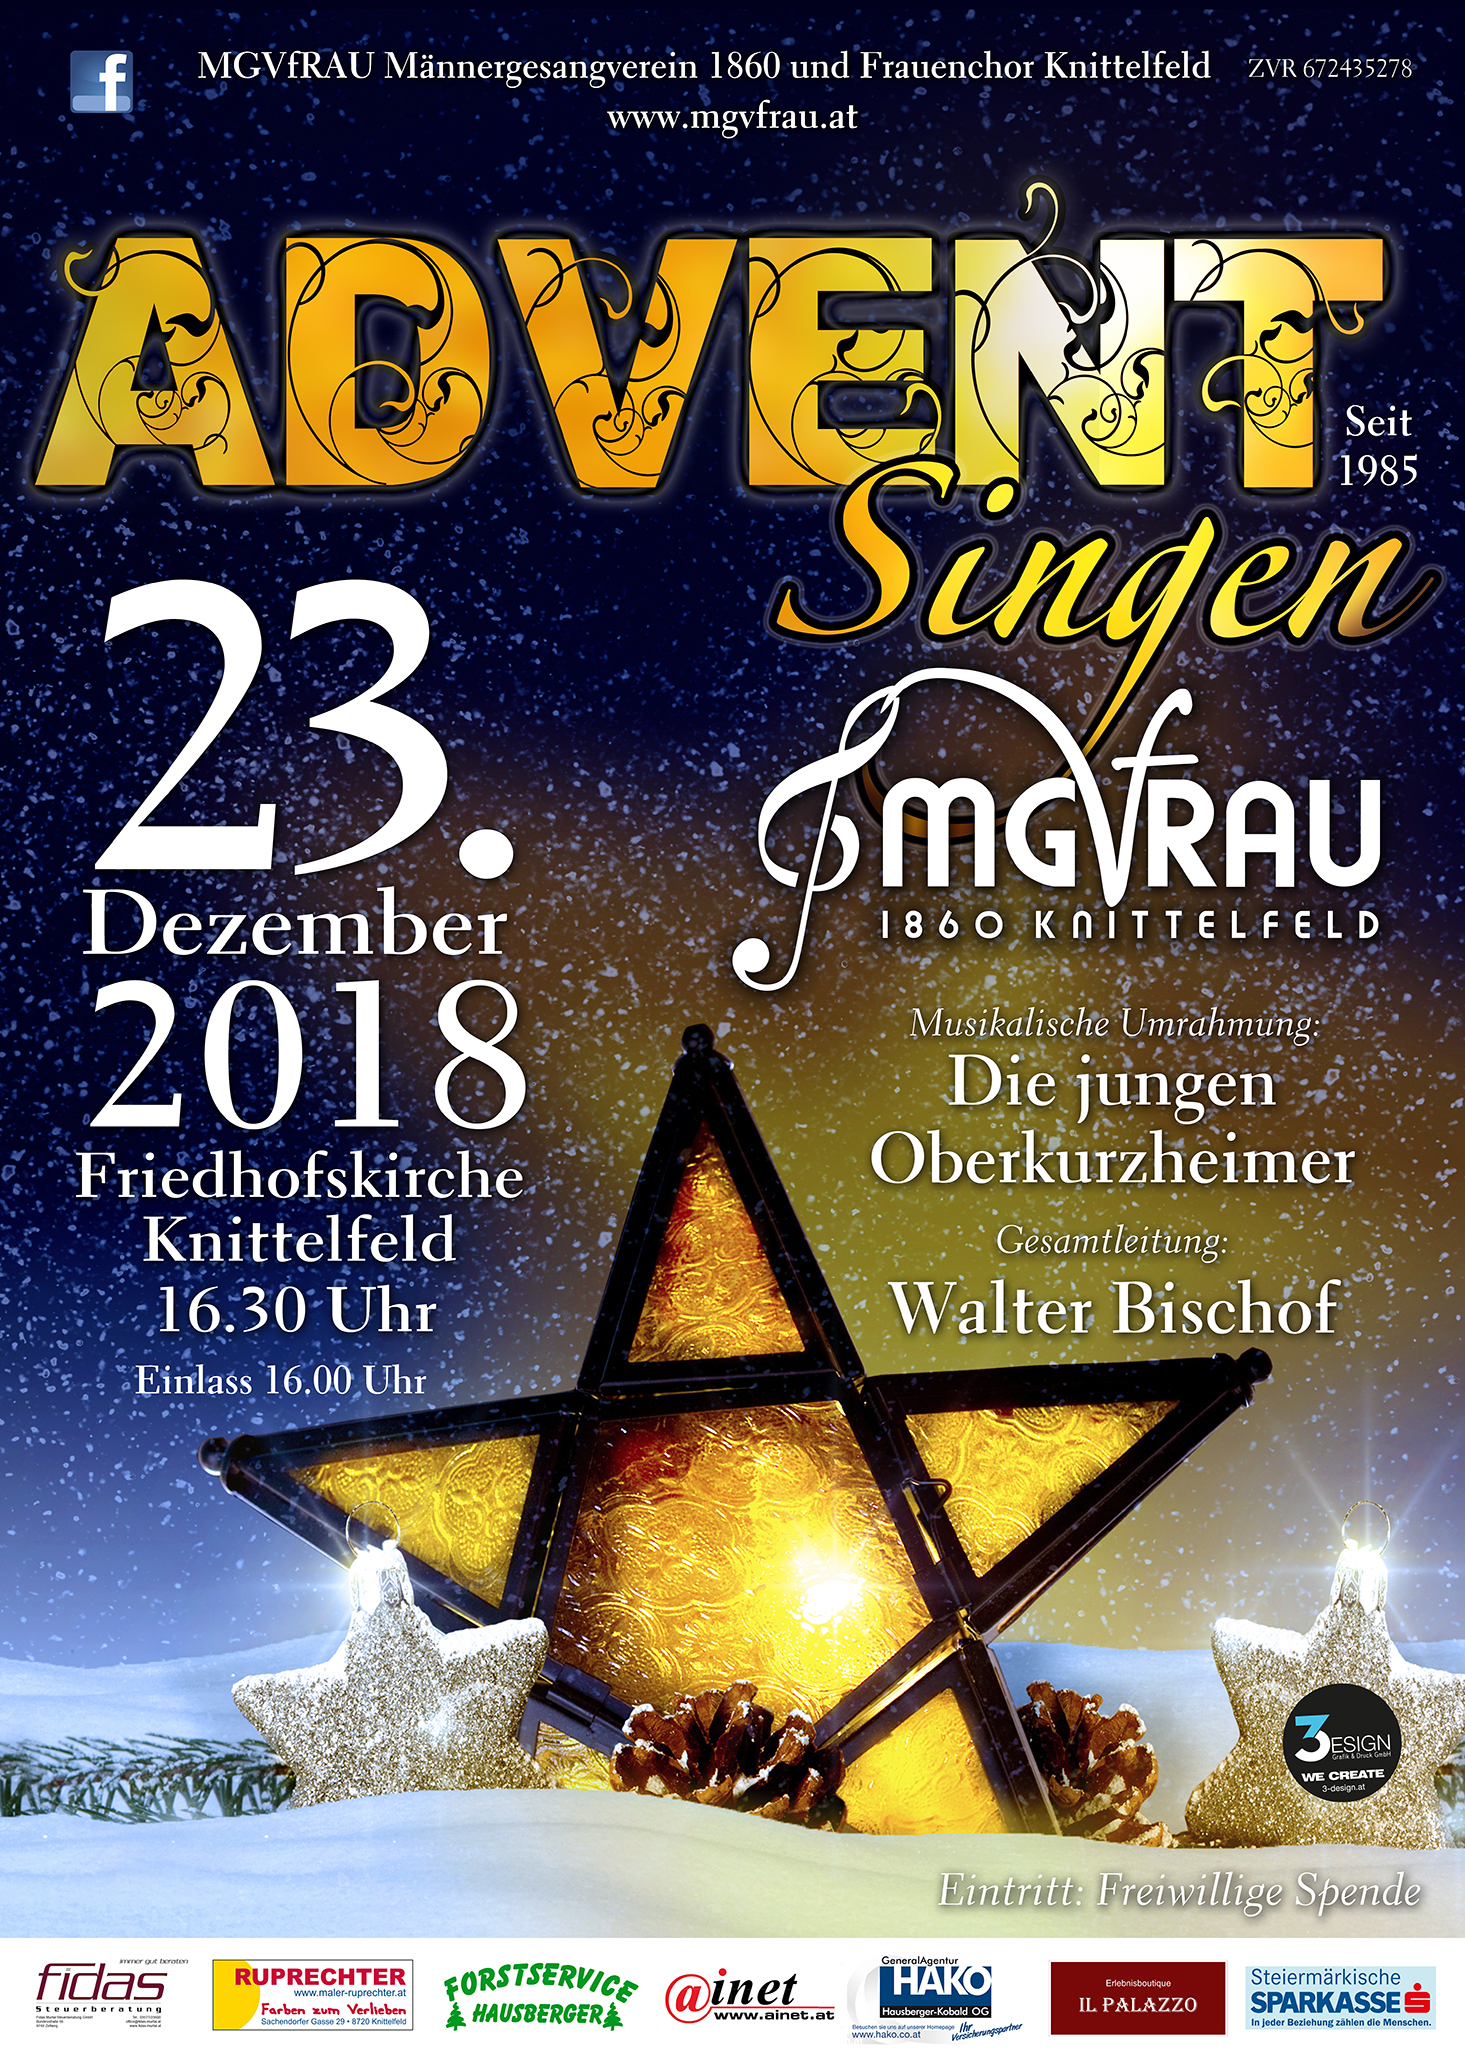 MGVfRAU Advent Singen